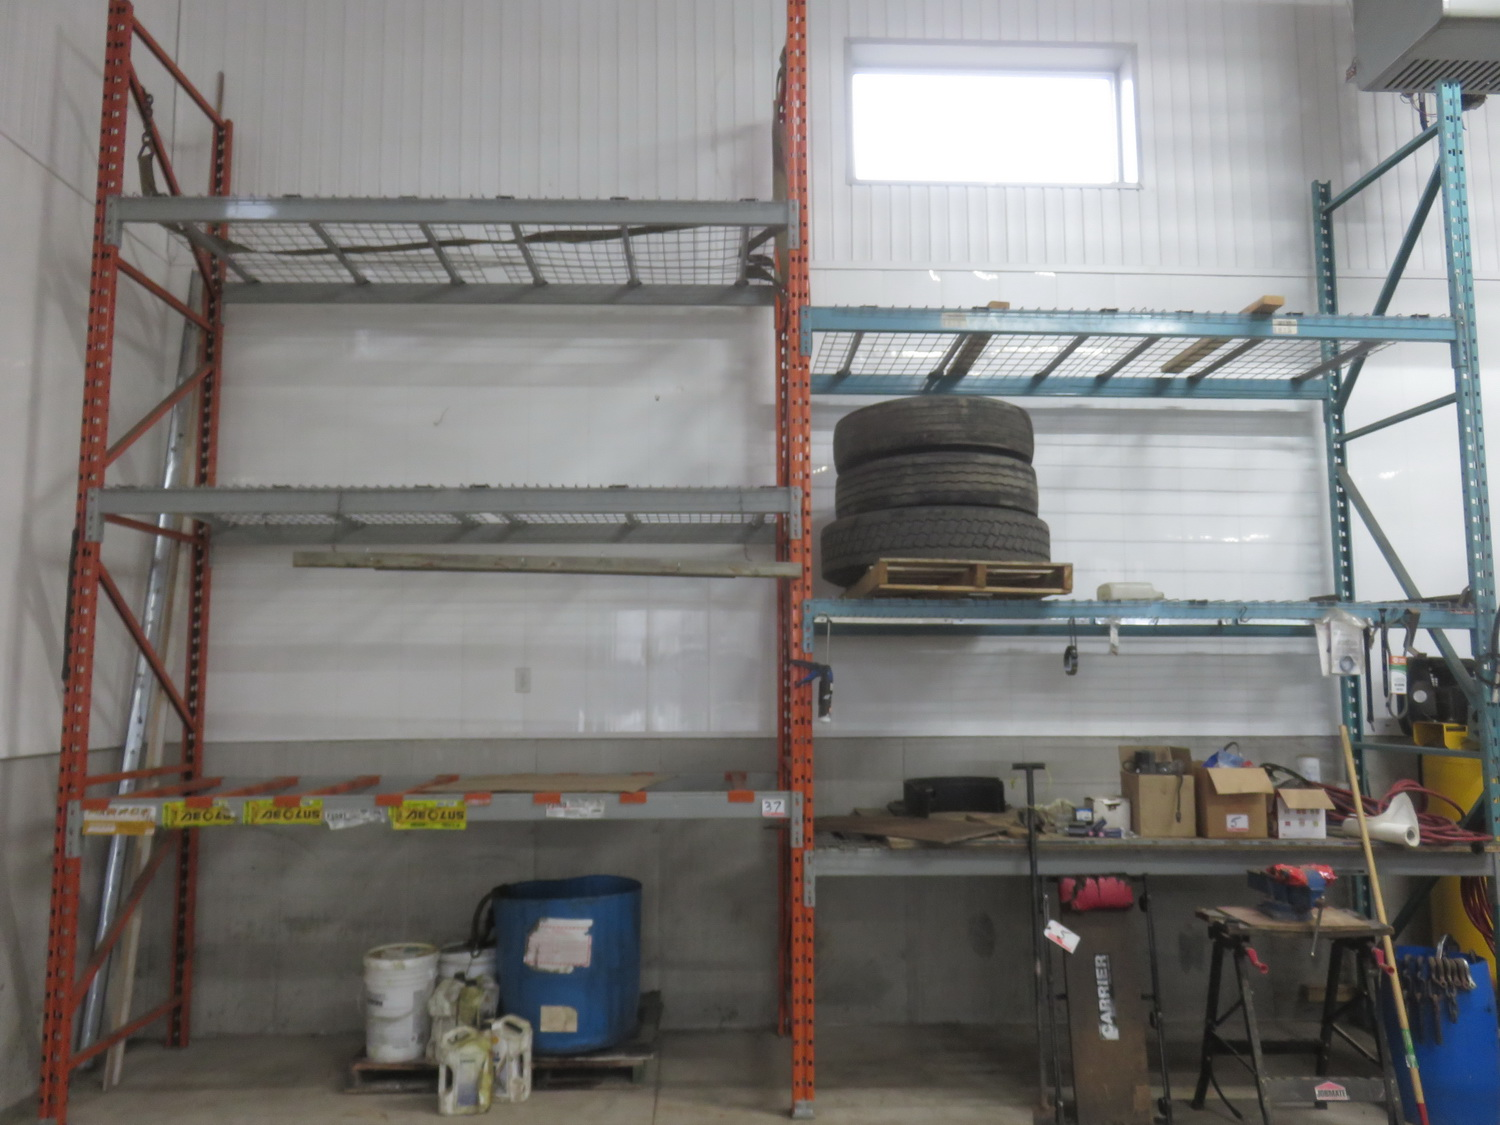 "SECTIONS - BLUE/ ORANGE 42 X 9 X 183"" RACKING"